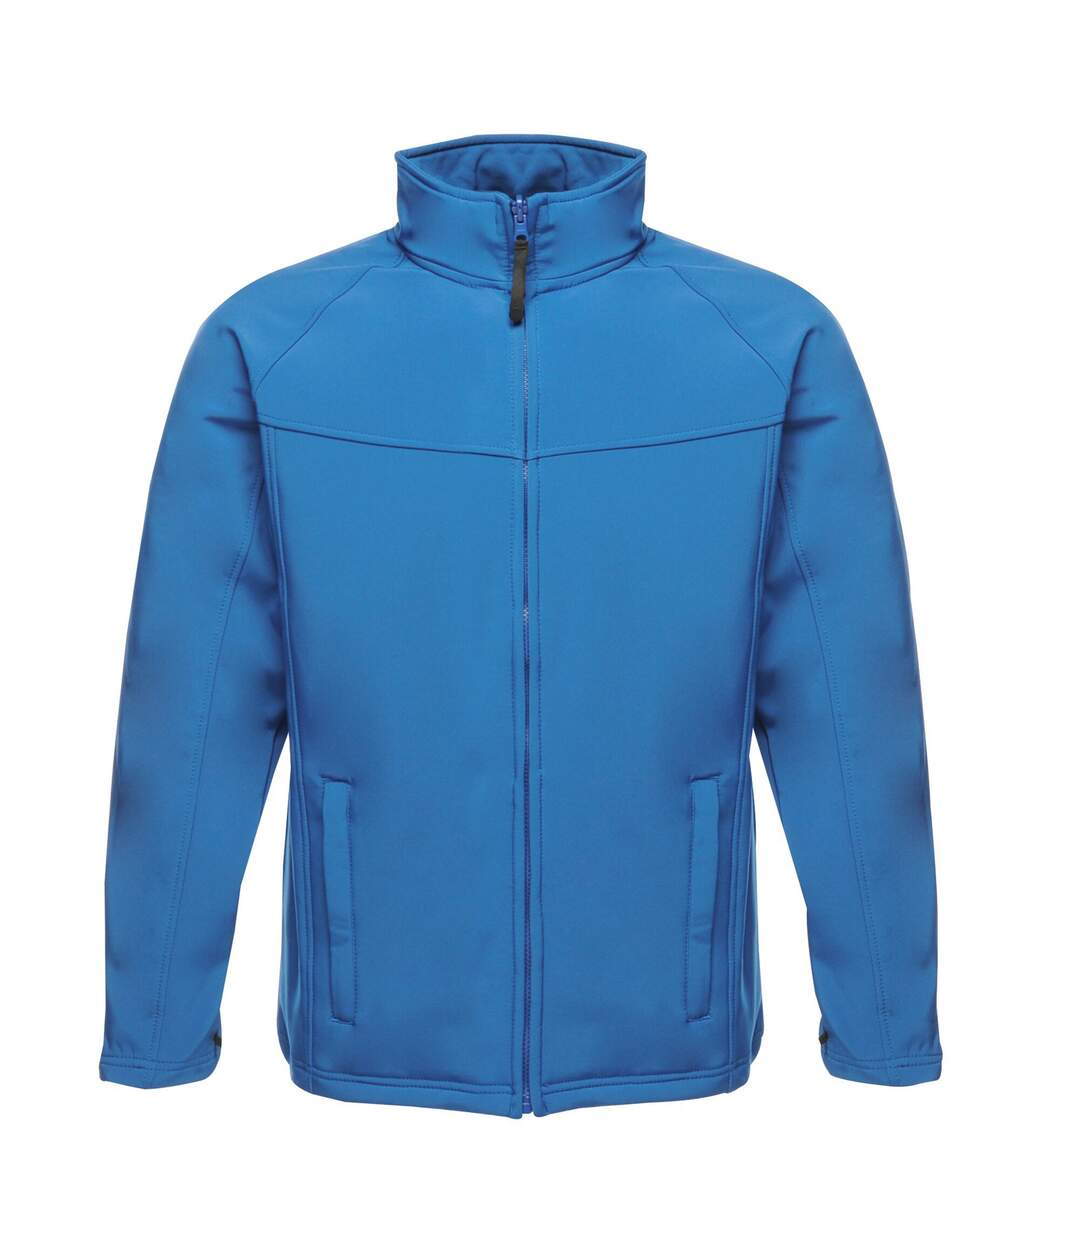 Regatta Uproar Mens Softshell Wind Resistant Fleece Jacket (Royal Blue) - UTRG1480